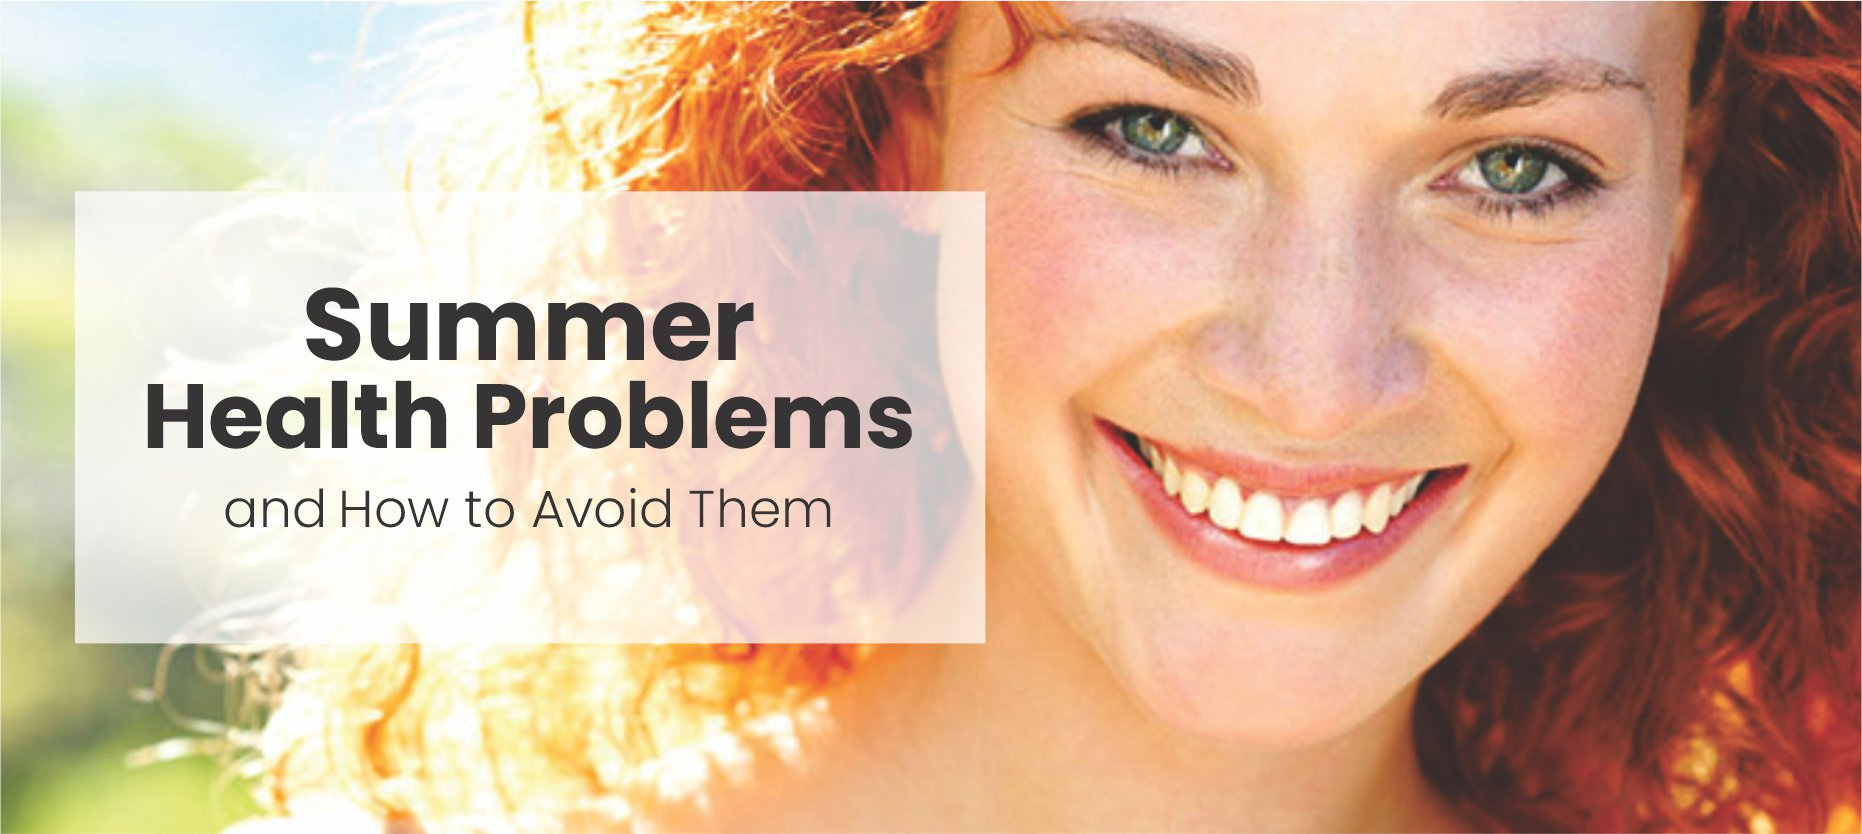 Summer Health Problems and How to Avoid them